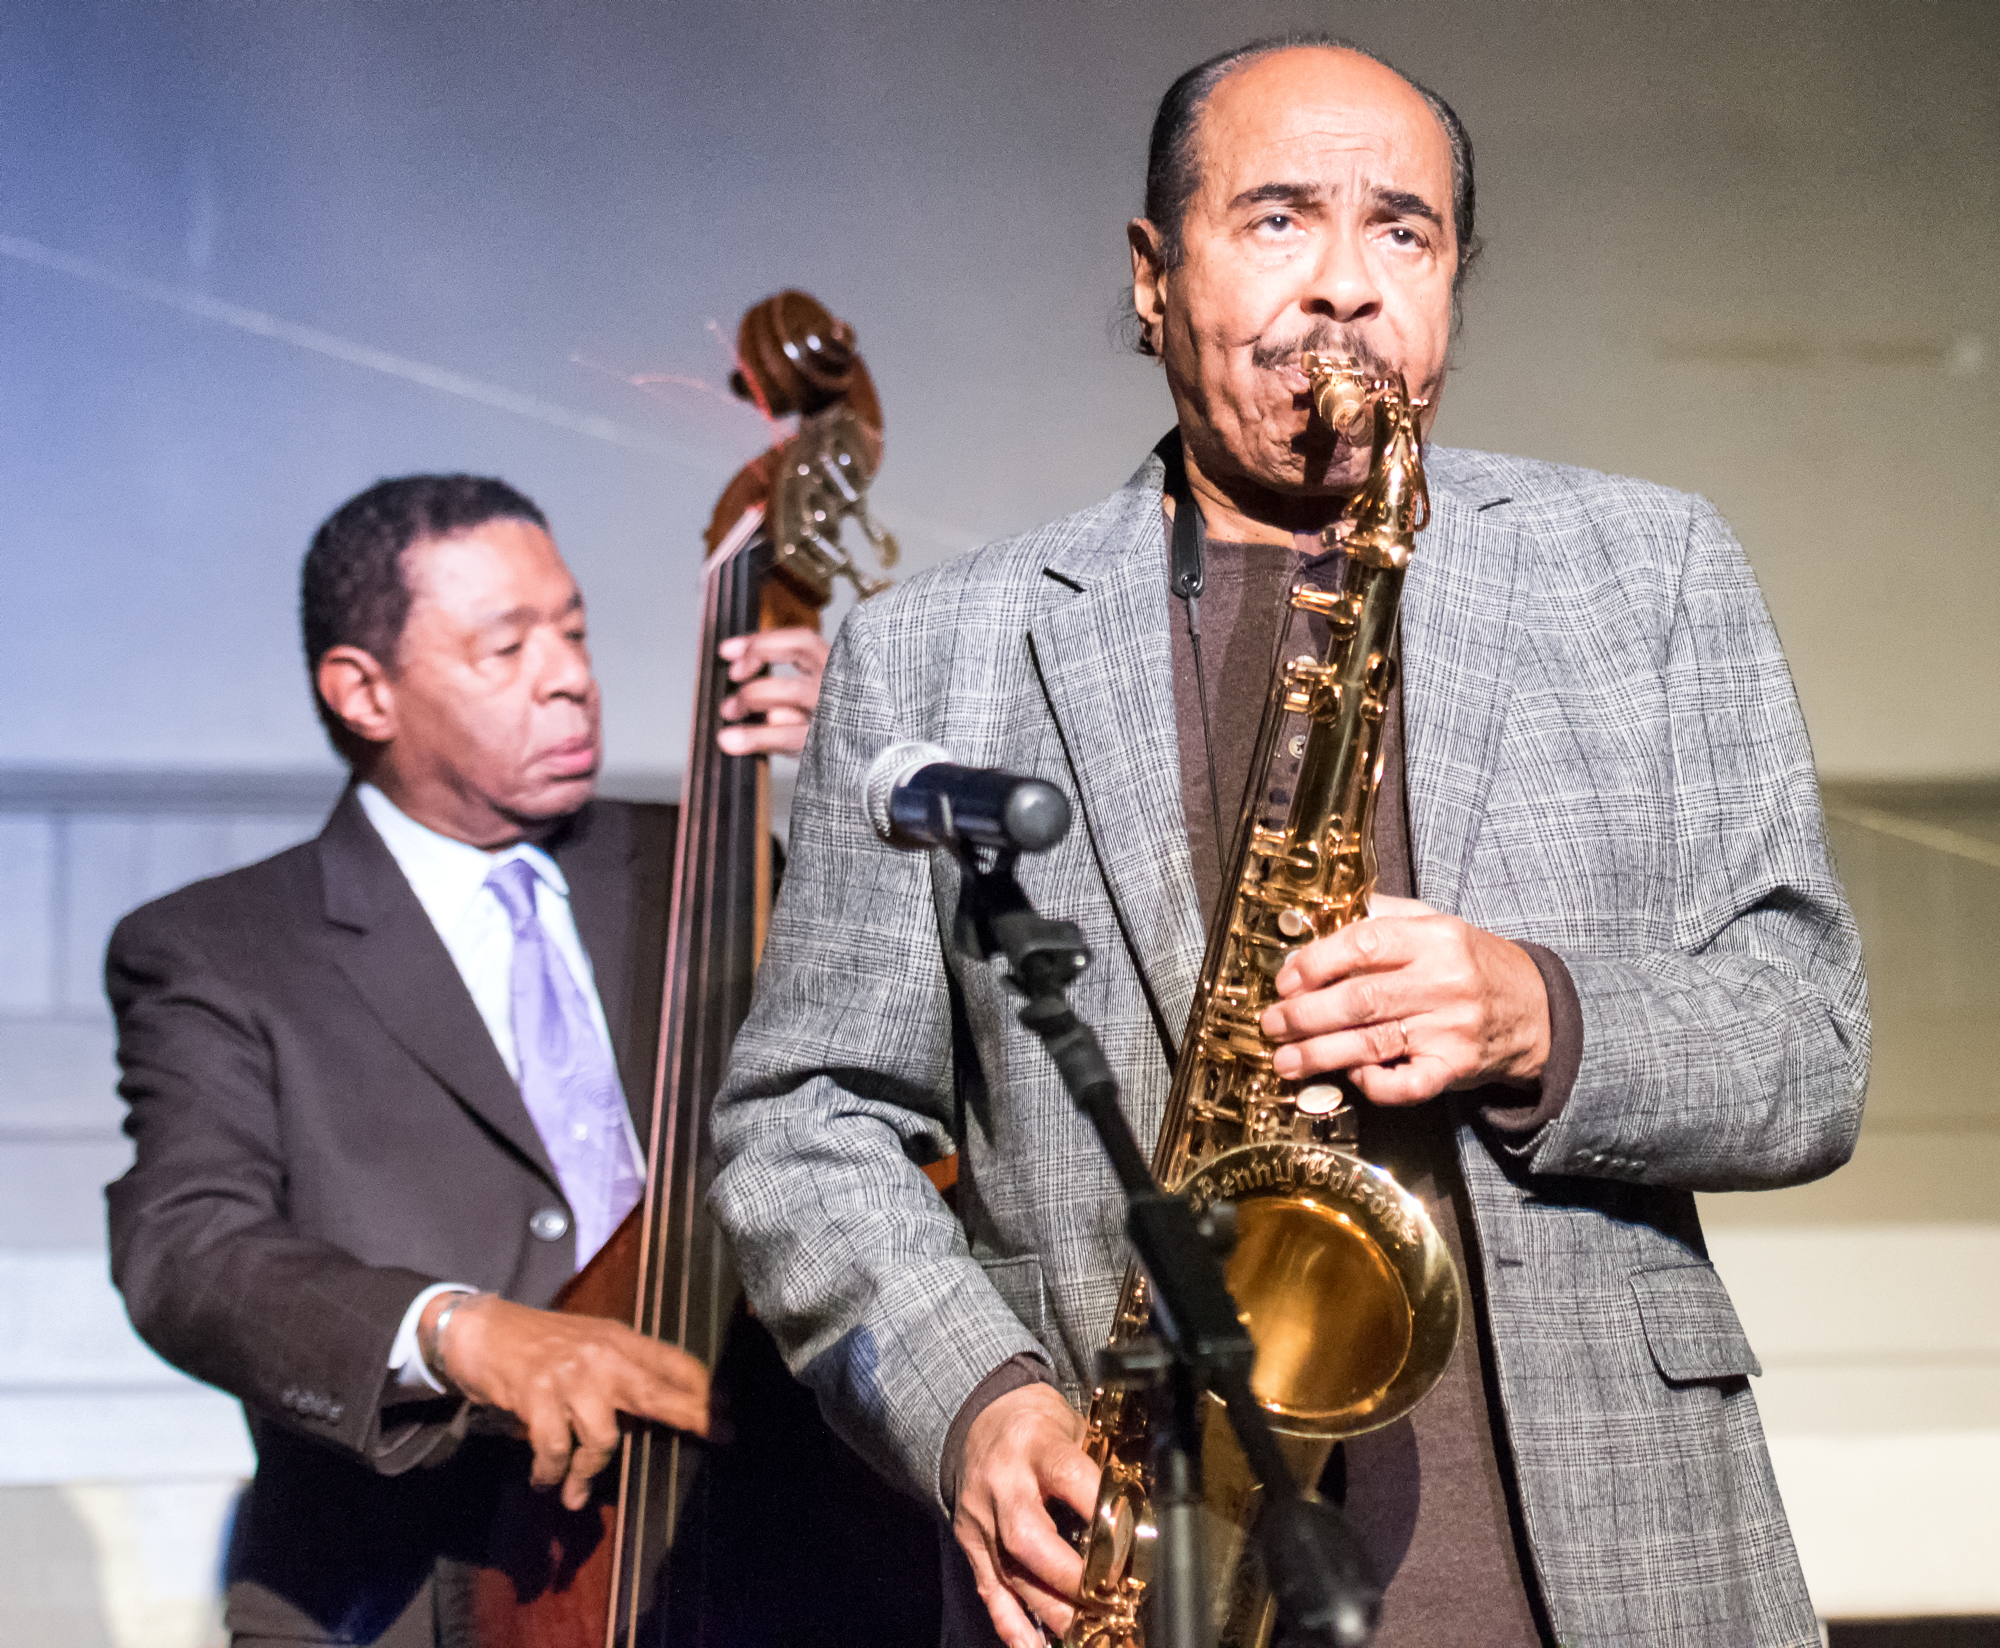 Benny Golson and Buster Williams at Jazz Legends Play for Disability Pride at Nyc Winter Jazzfest 2015